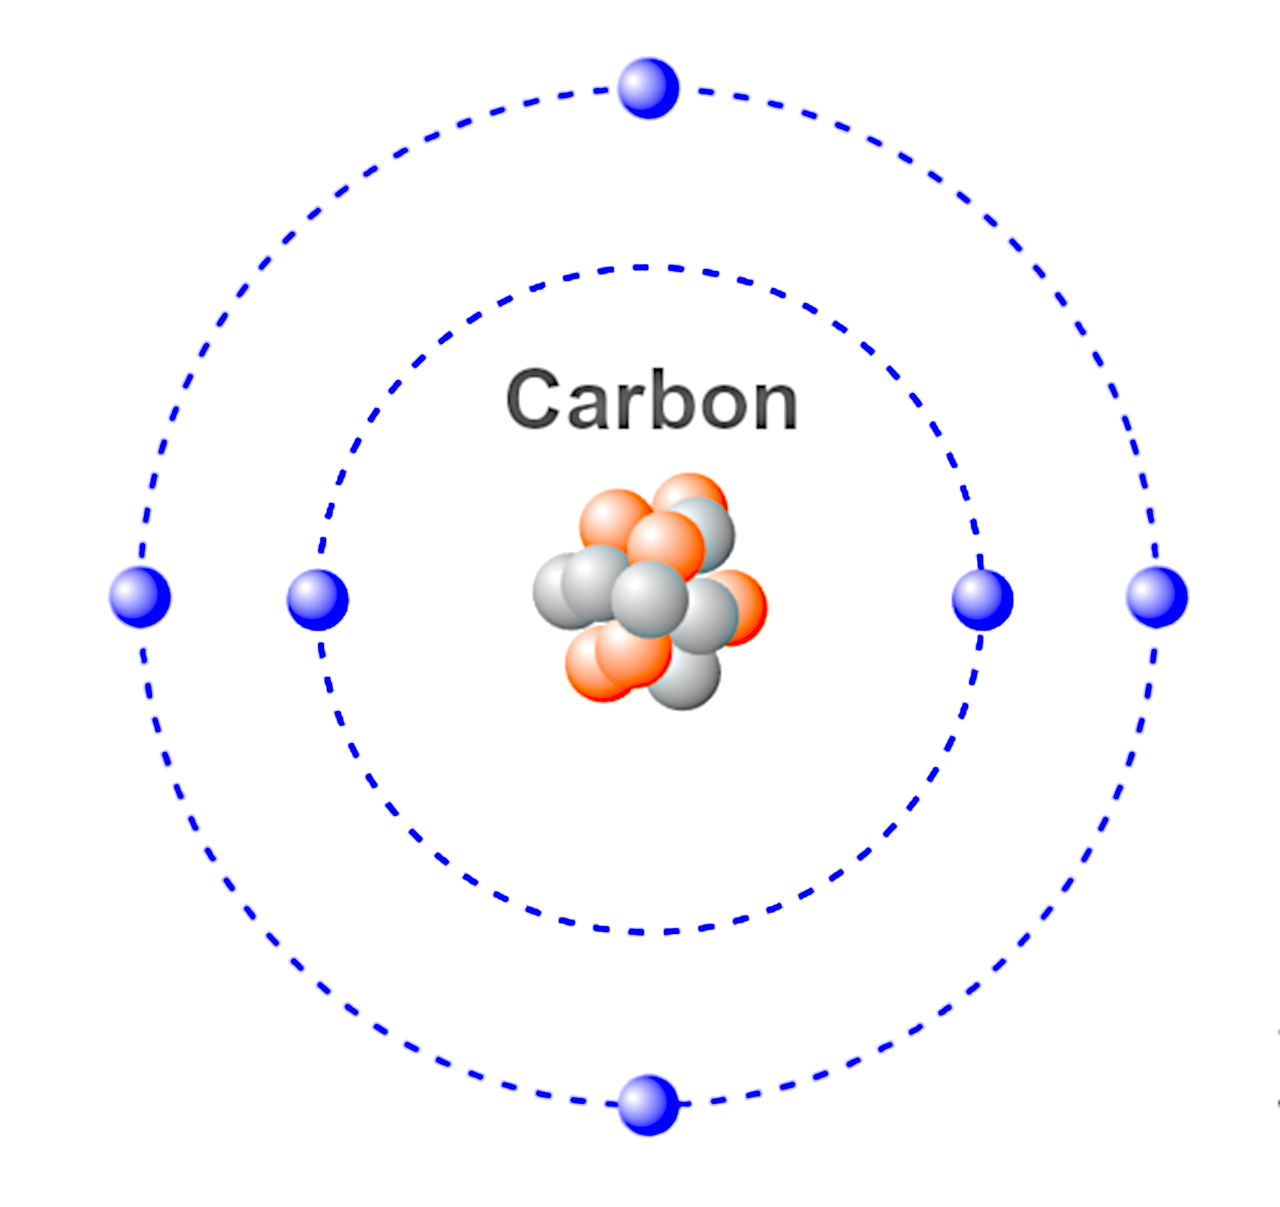 Carbon Atom Atoms - Free image on Pixabay